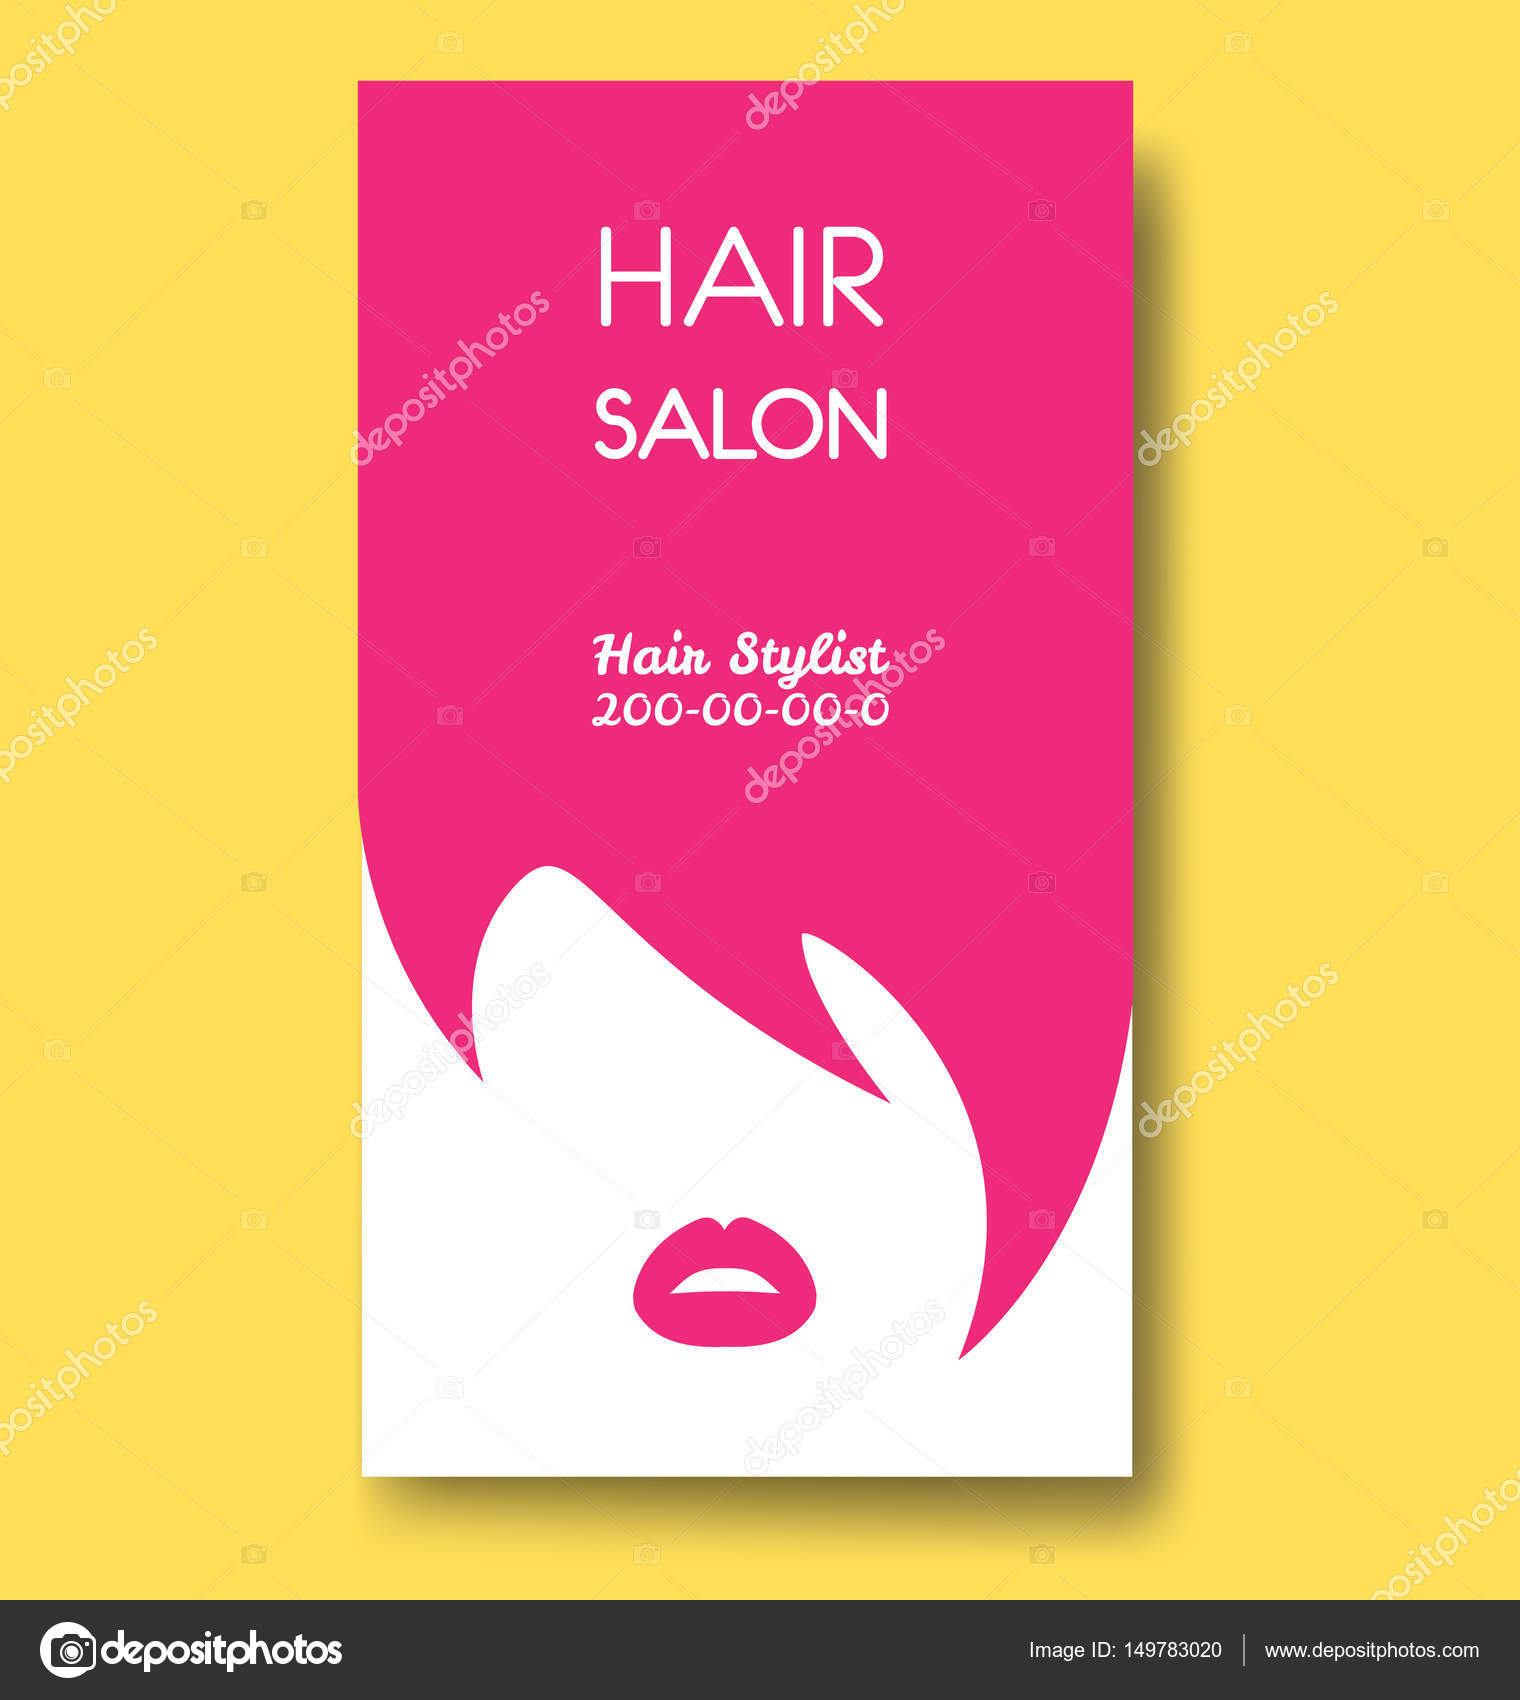 Hair salon business card templates with pink hair and pink lips hair salon business card templates with pink hair and pink lips stock vector wajeb